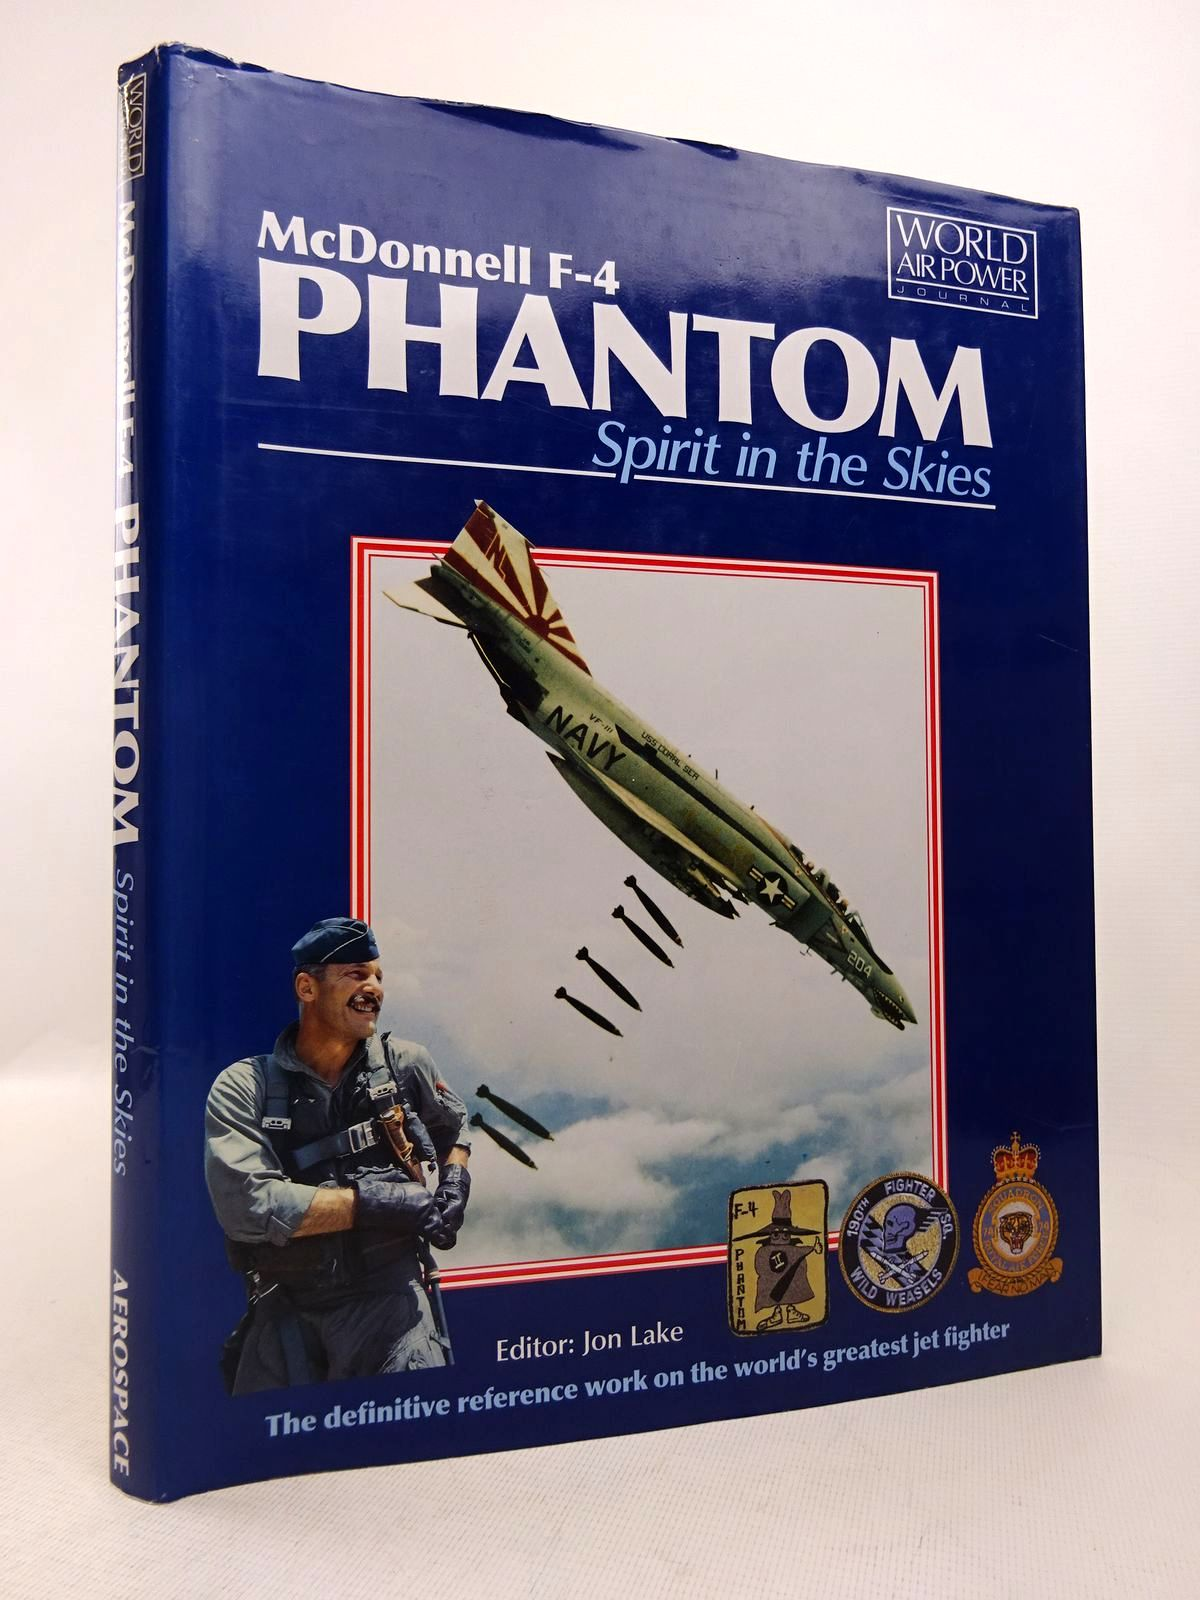 Photo of MCDONNELL F-4 PHANTOM SPIRIT IN THE SKIES written by Lake, Jon published by Aerospace (STOCK CODE: 1816823)  for sale by Stella & Rose's Books